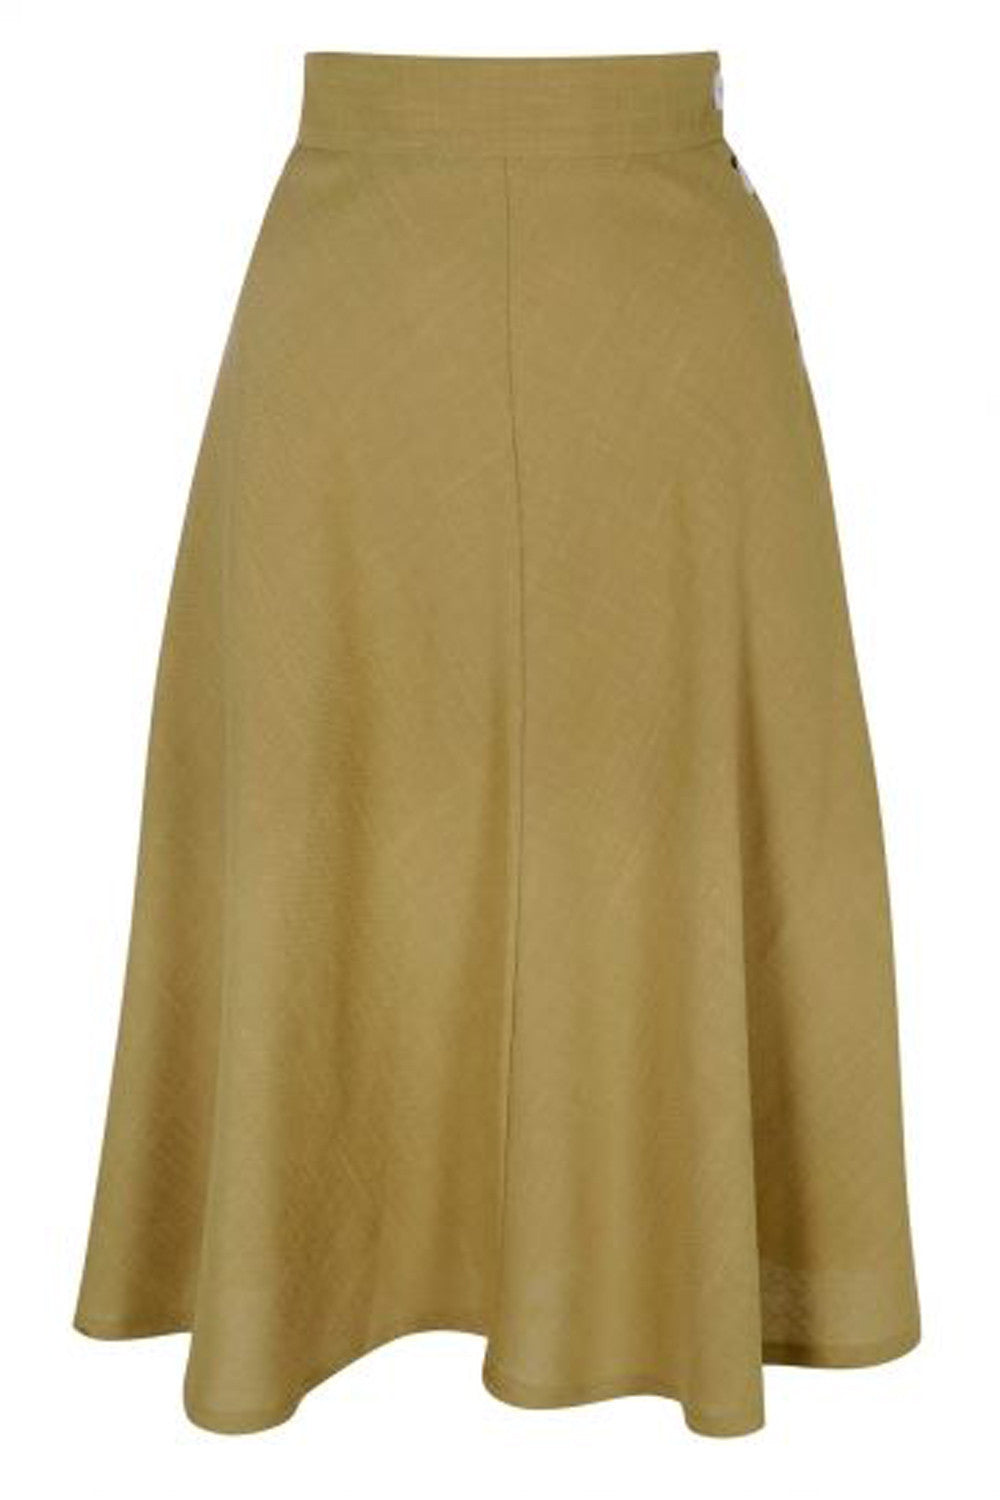 The Dancing Skirt - Khaki Linen